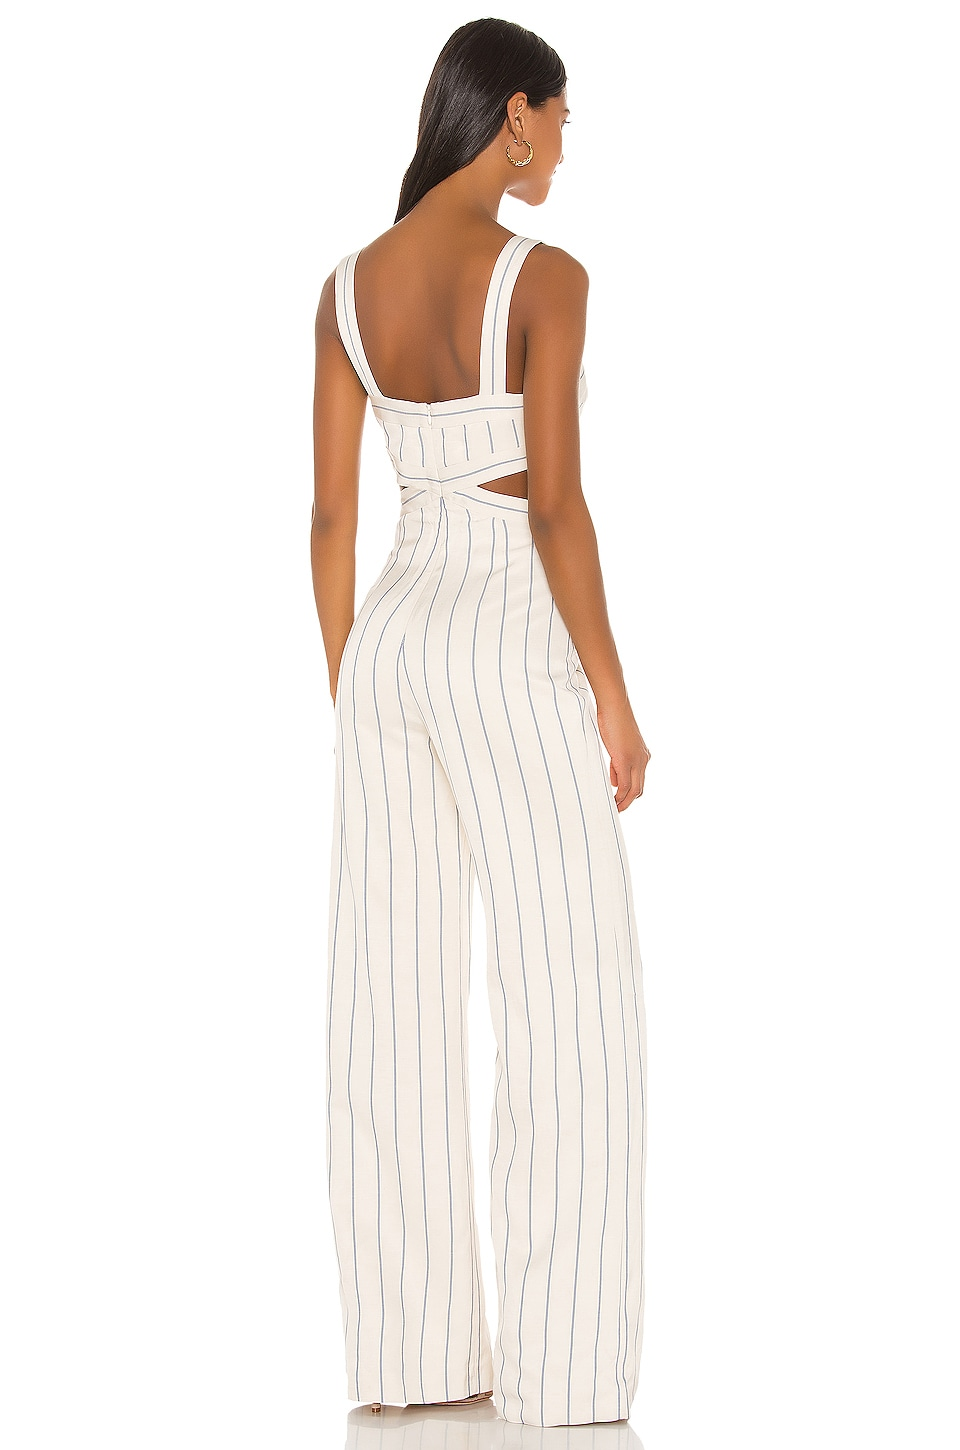 Lipton Jumpsuit, view 3, click to view large image.